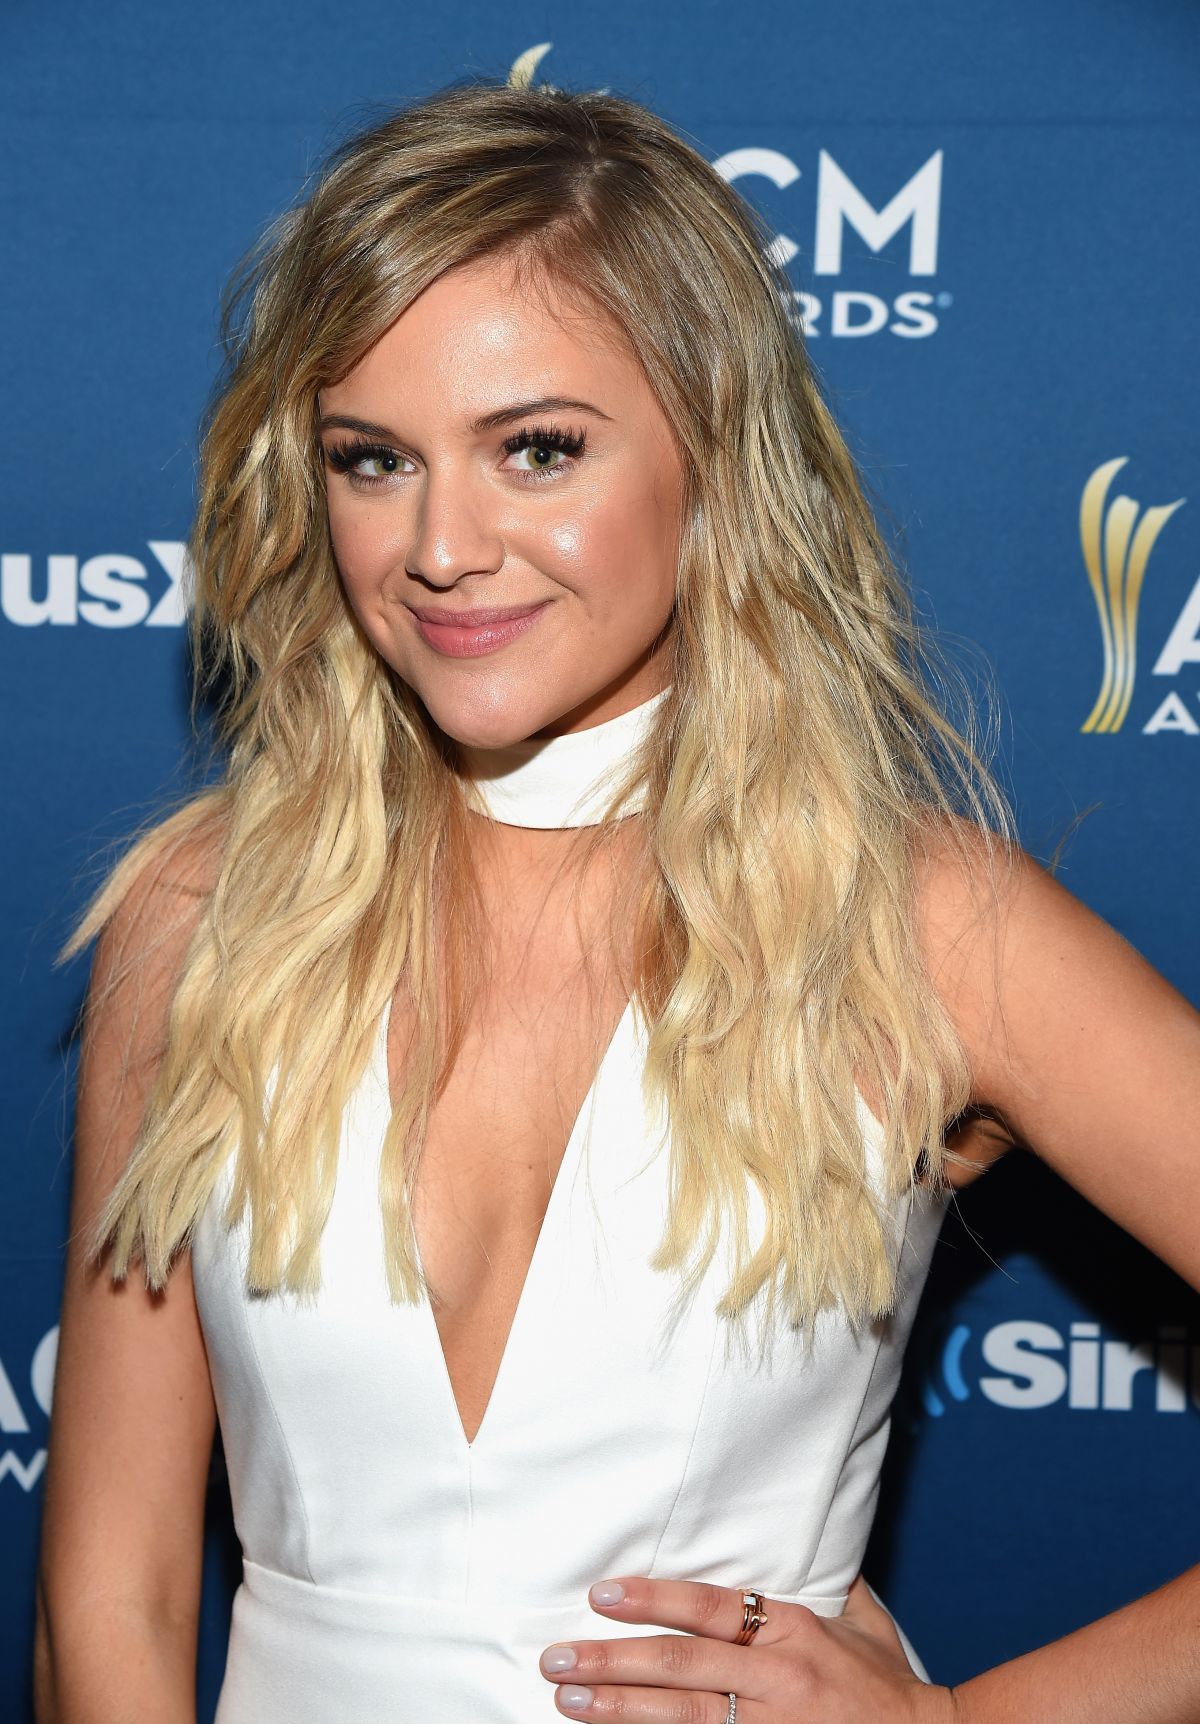 KELSEA BALLERINI at Highway Channel Broadcasts Backstage